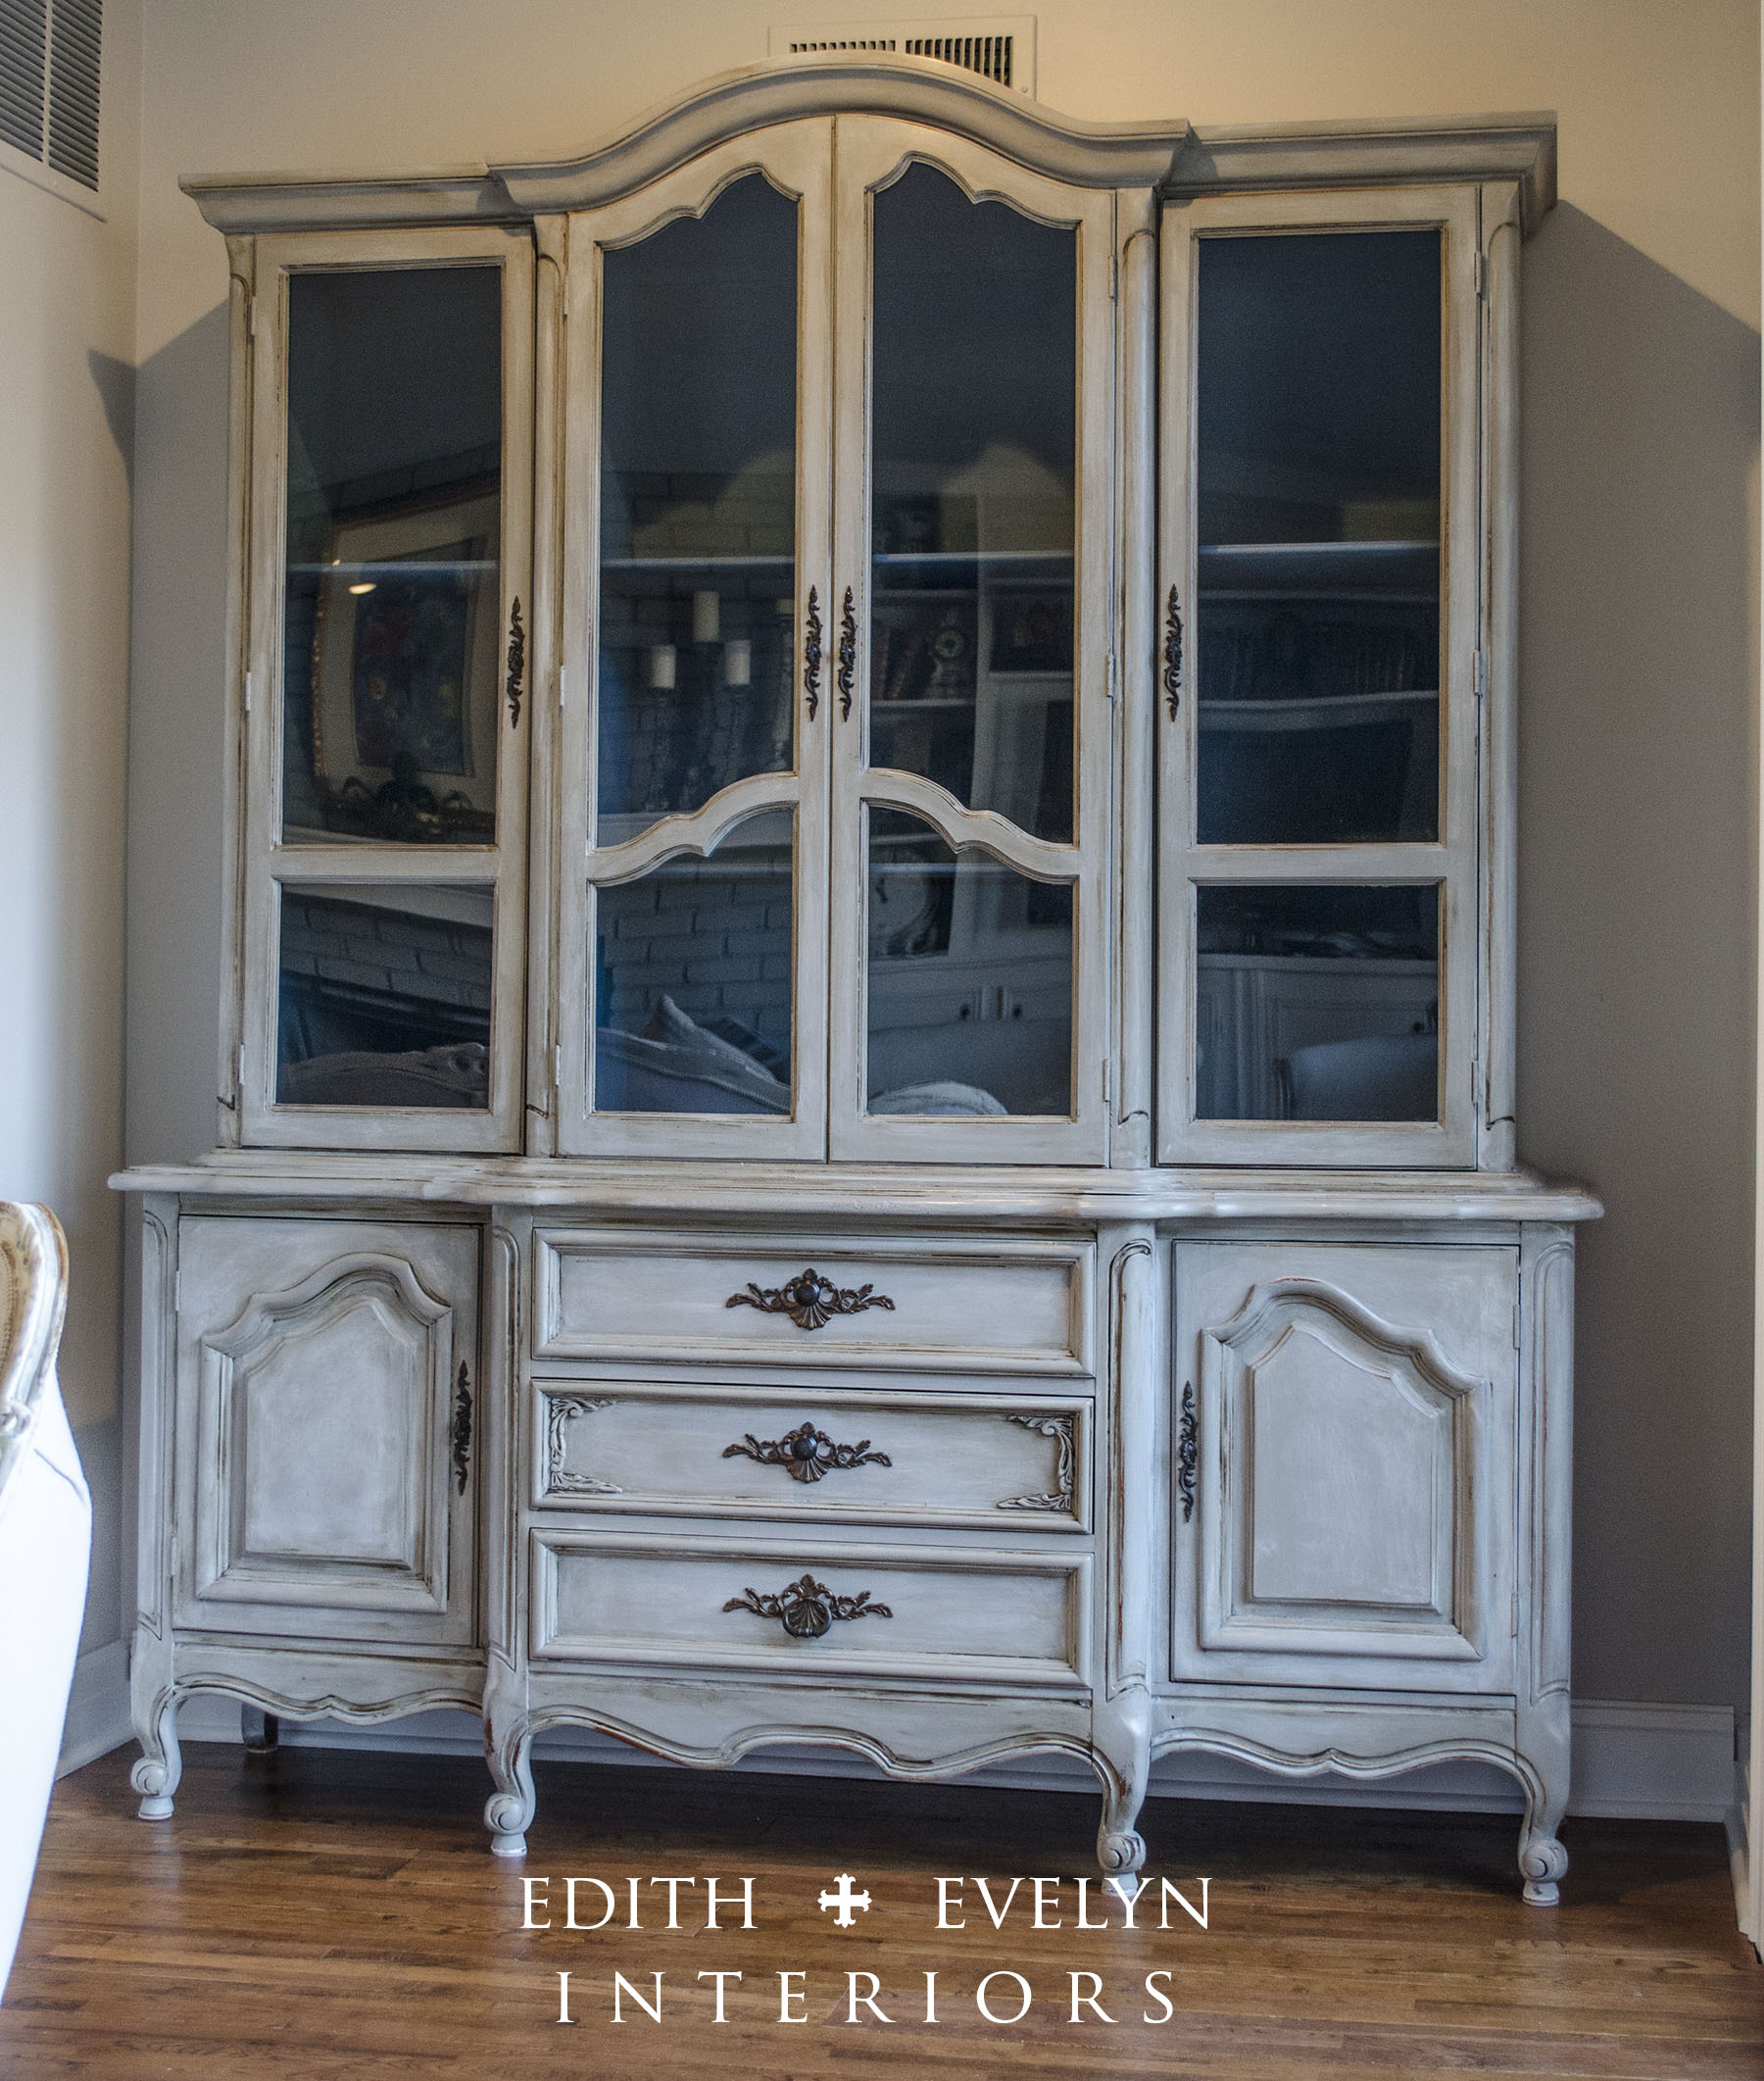 French country china cabinets - French Country China Cabinets 2